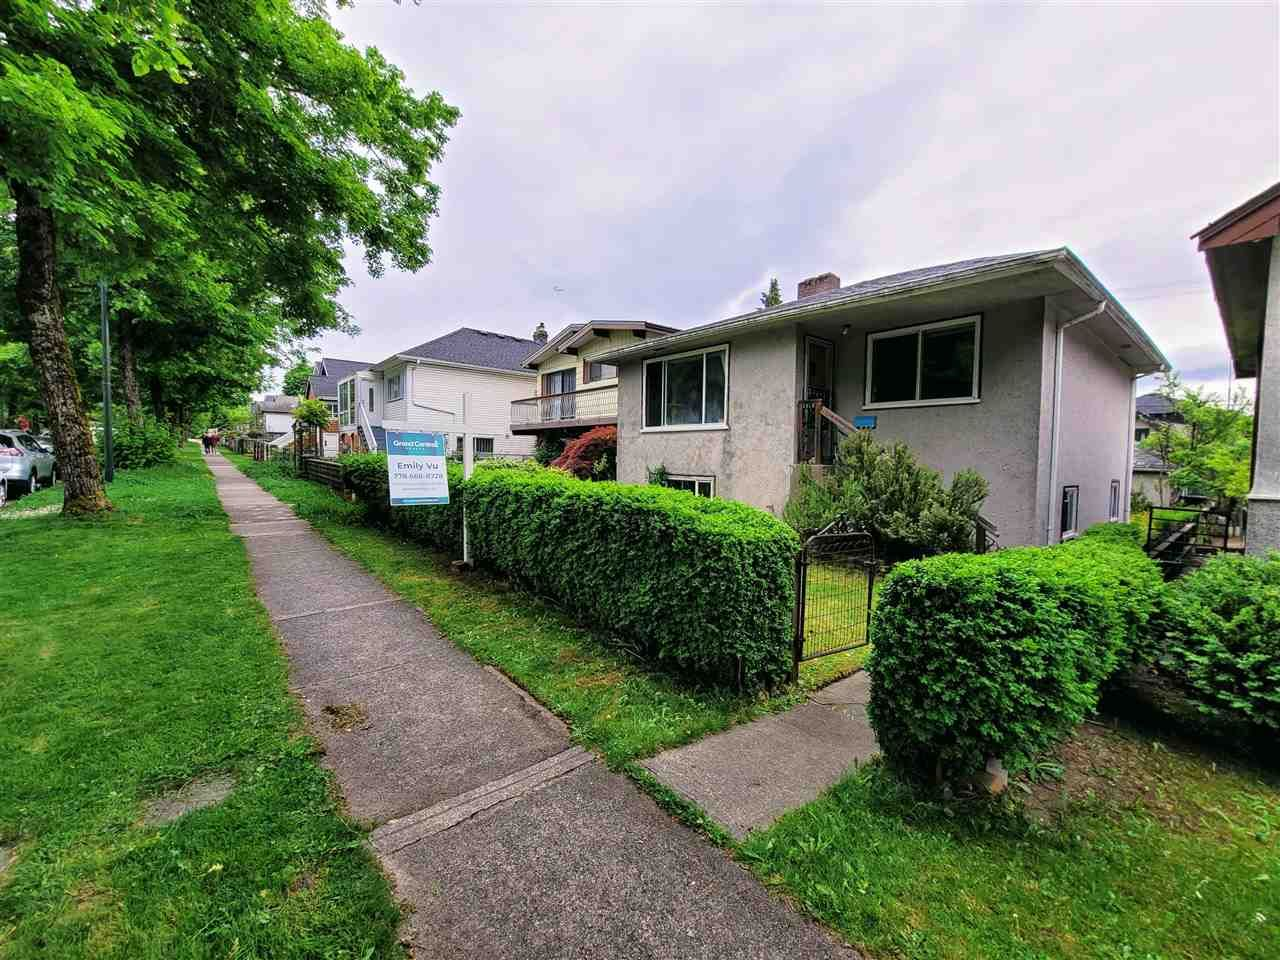 Main Photo: 1915 E 37TH Avenue in Vancouver: Victoria VE House for sale (Vancouver East)  : MLS®# R2581941